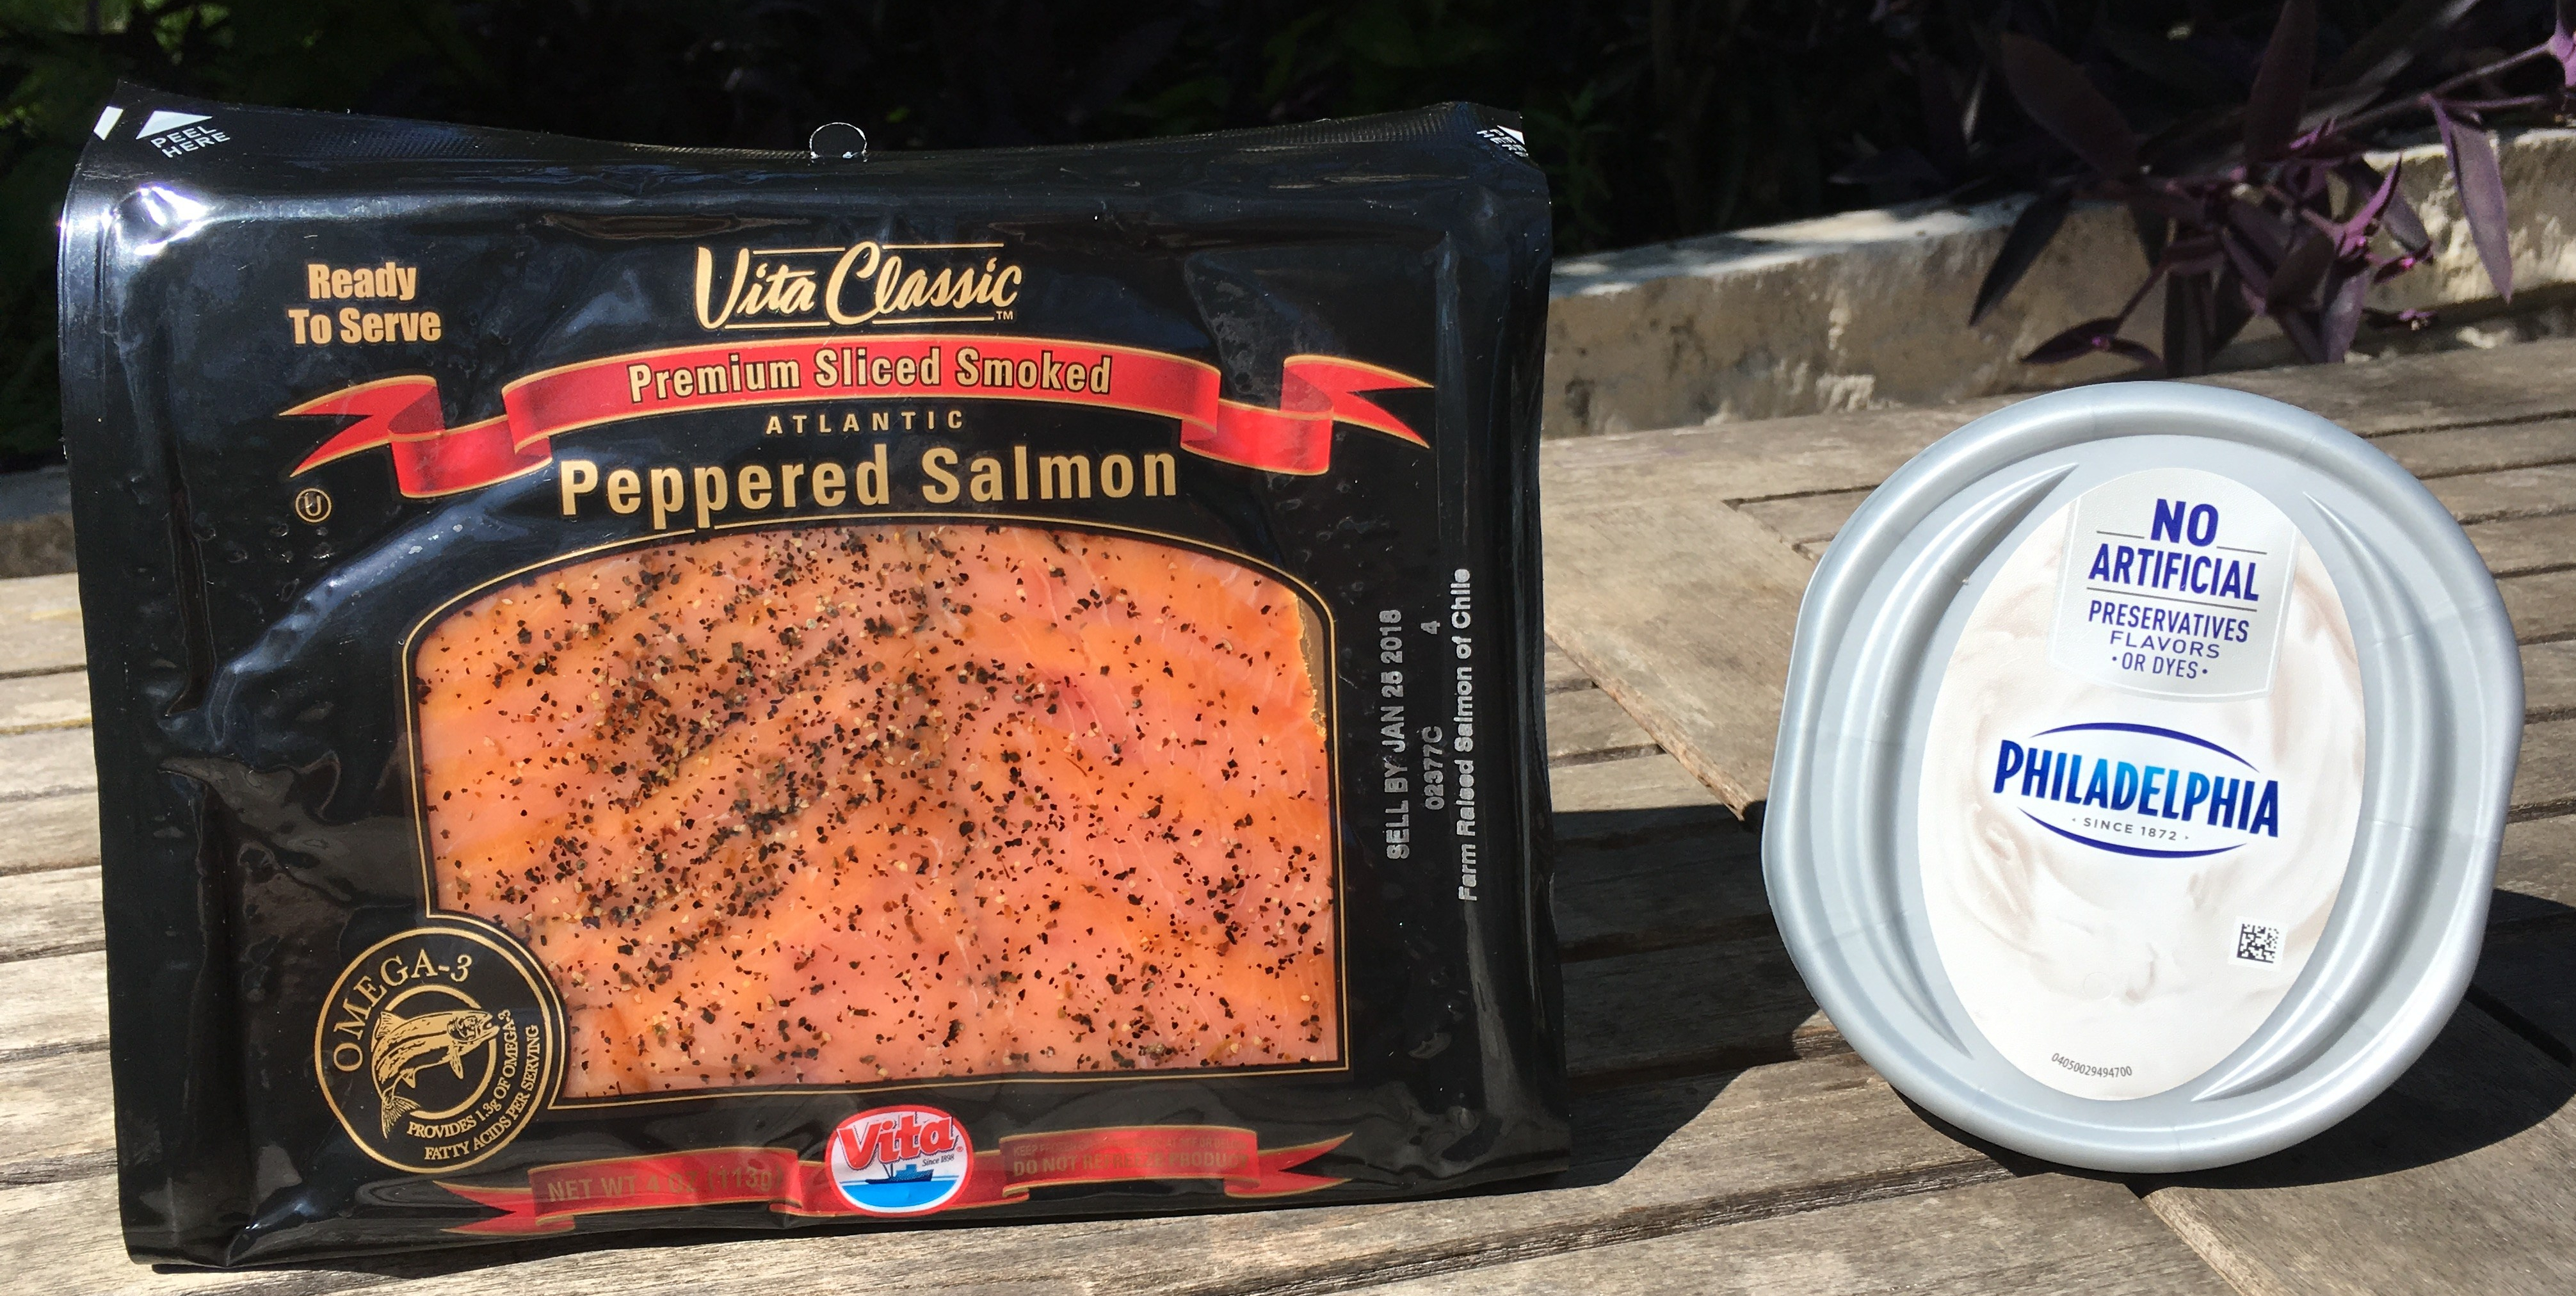 Keto Salmon and Cream Cheese Rollup Ingredients